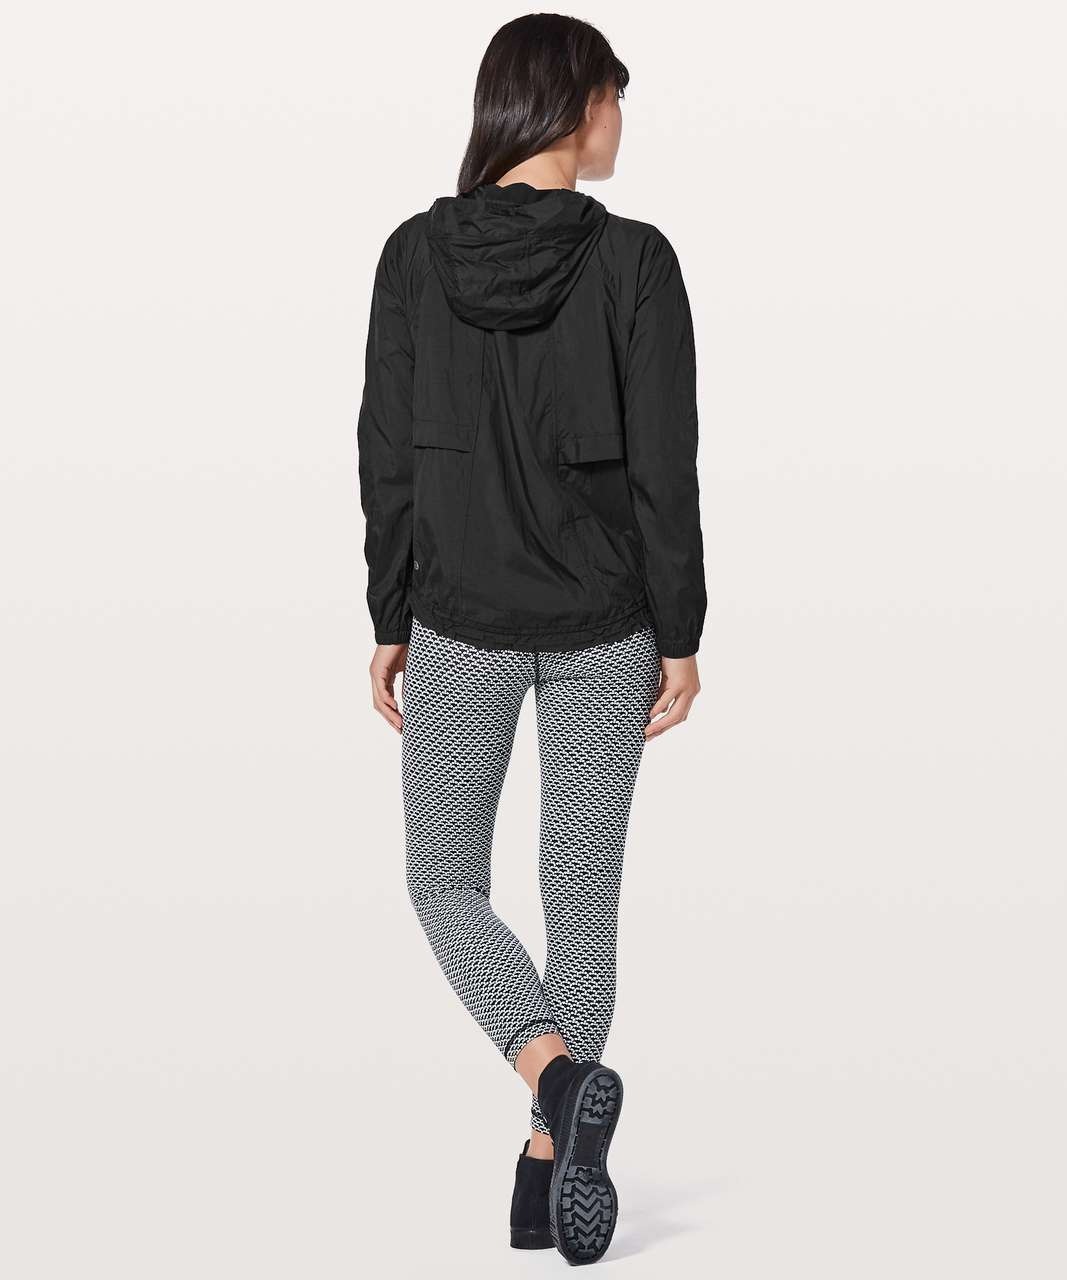 Lululemon Hood Lite Jacket - Black